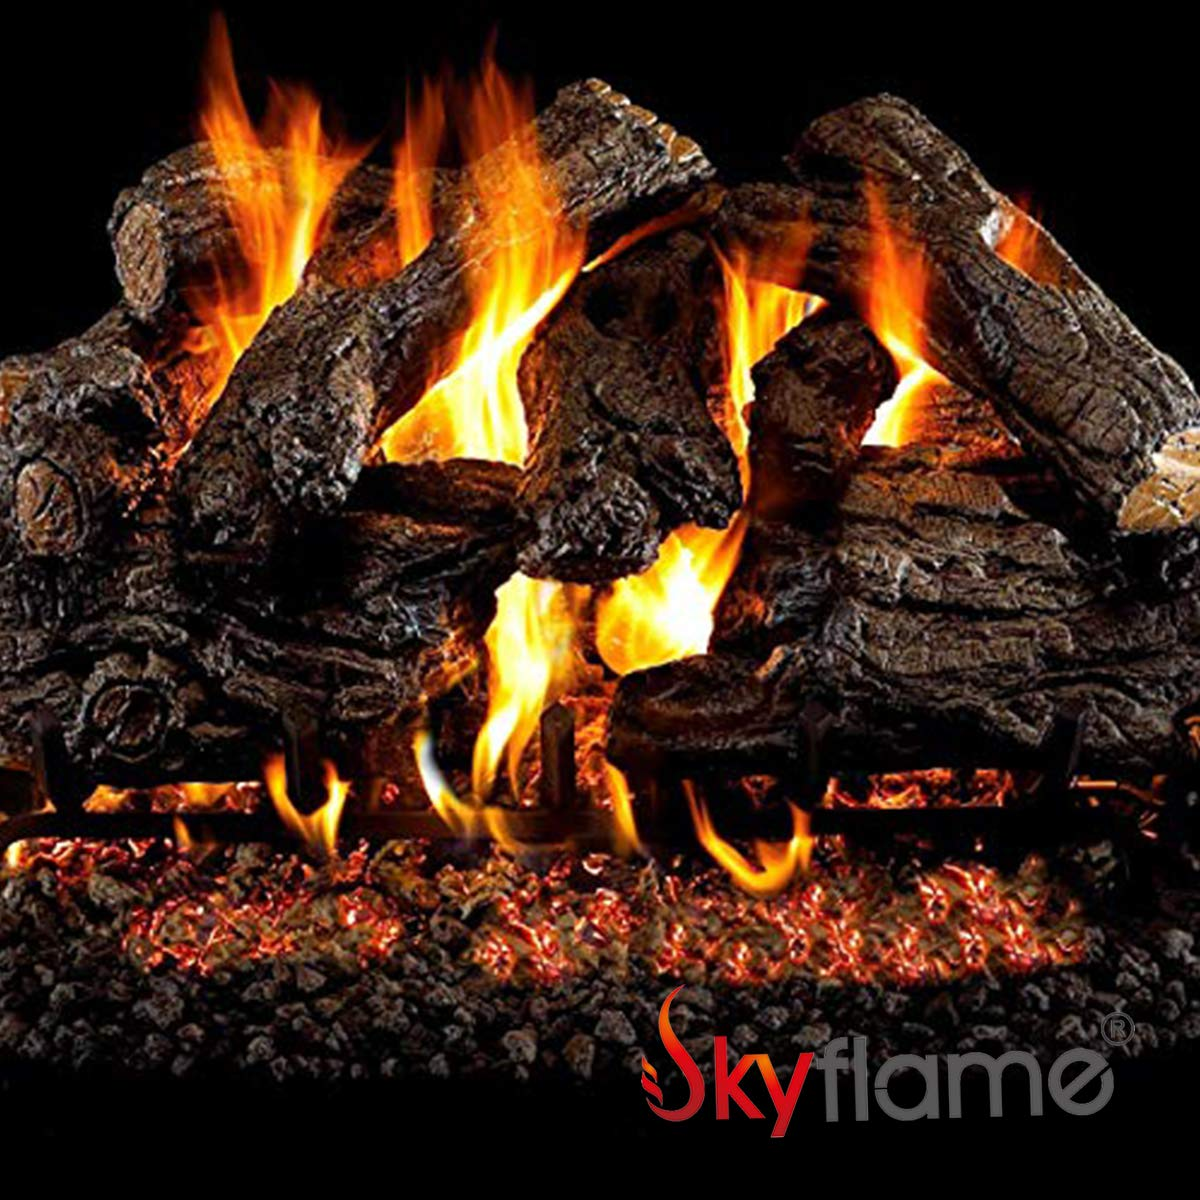 Skyflame Glowing Embers Rock Wool for Vent Free and Vented Gas Fireplaces, 6 Oz by Skyflame